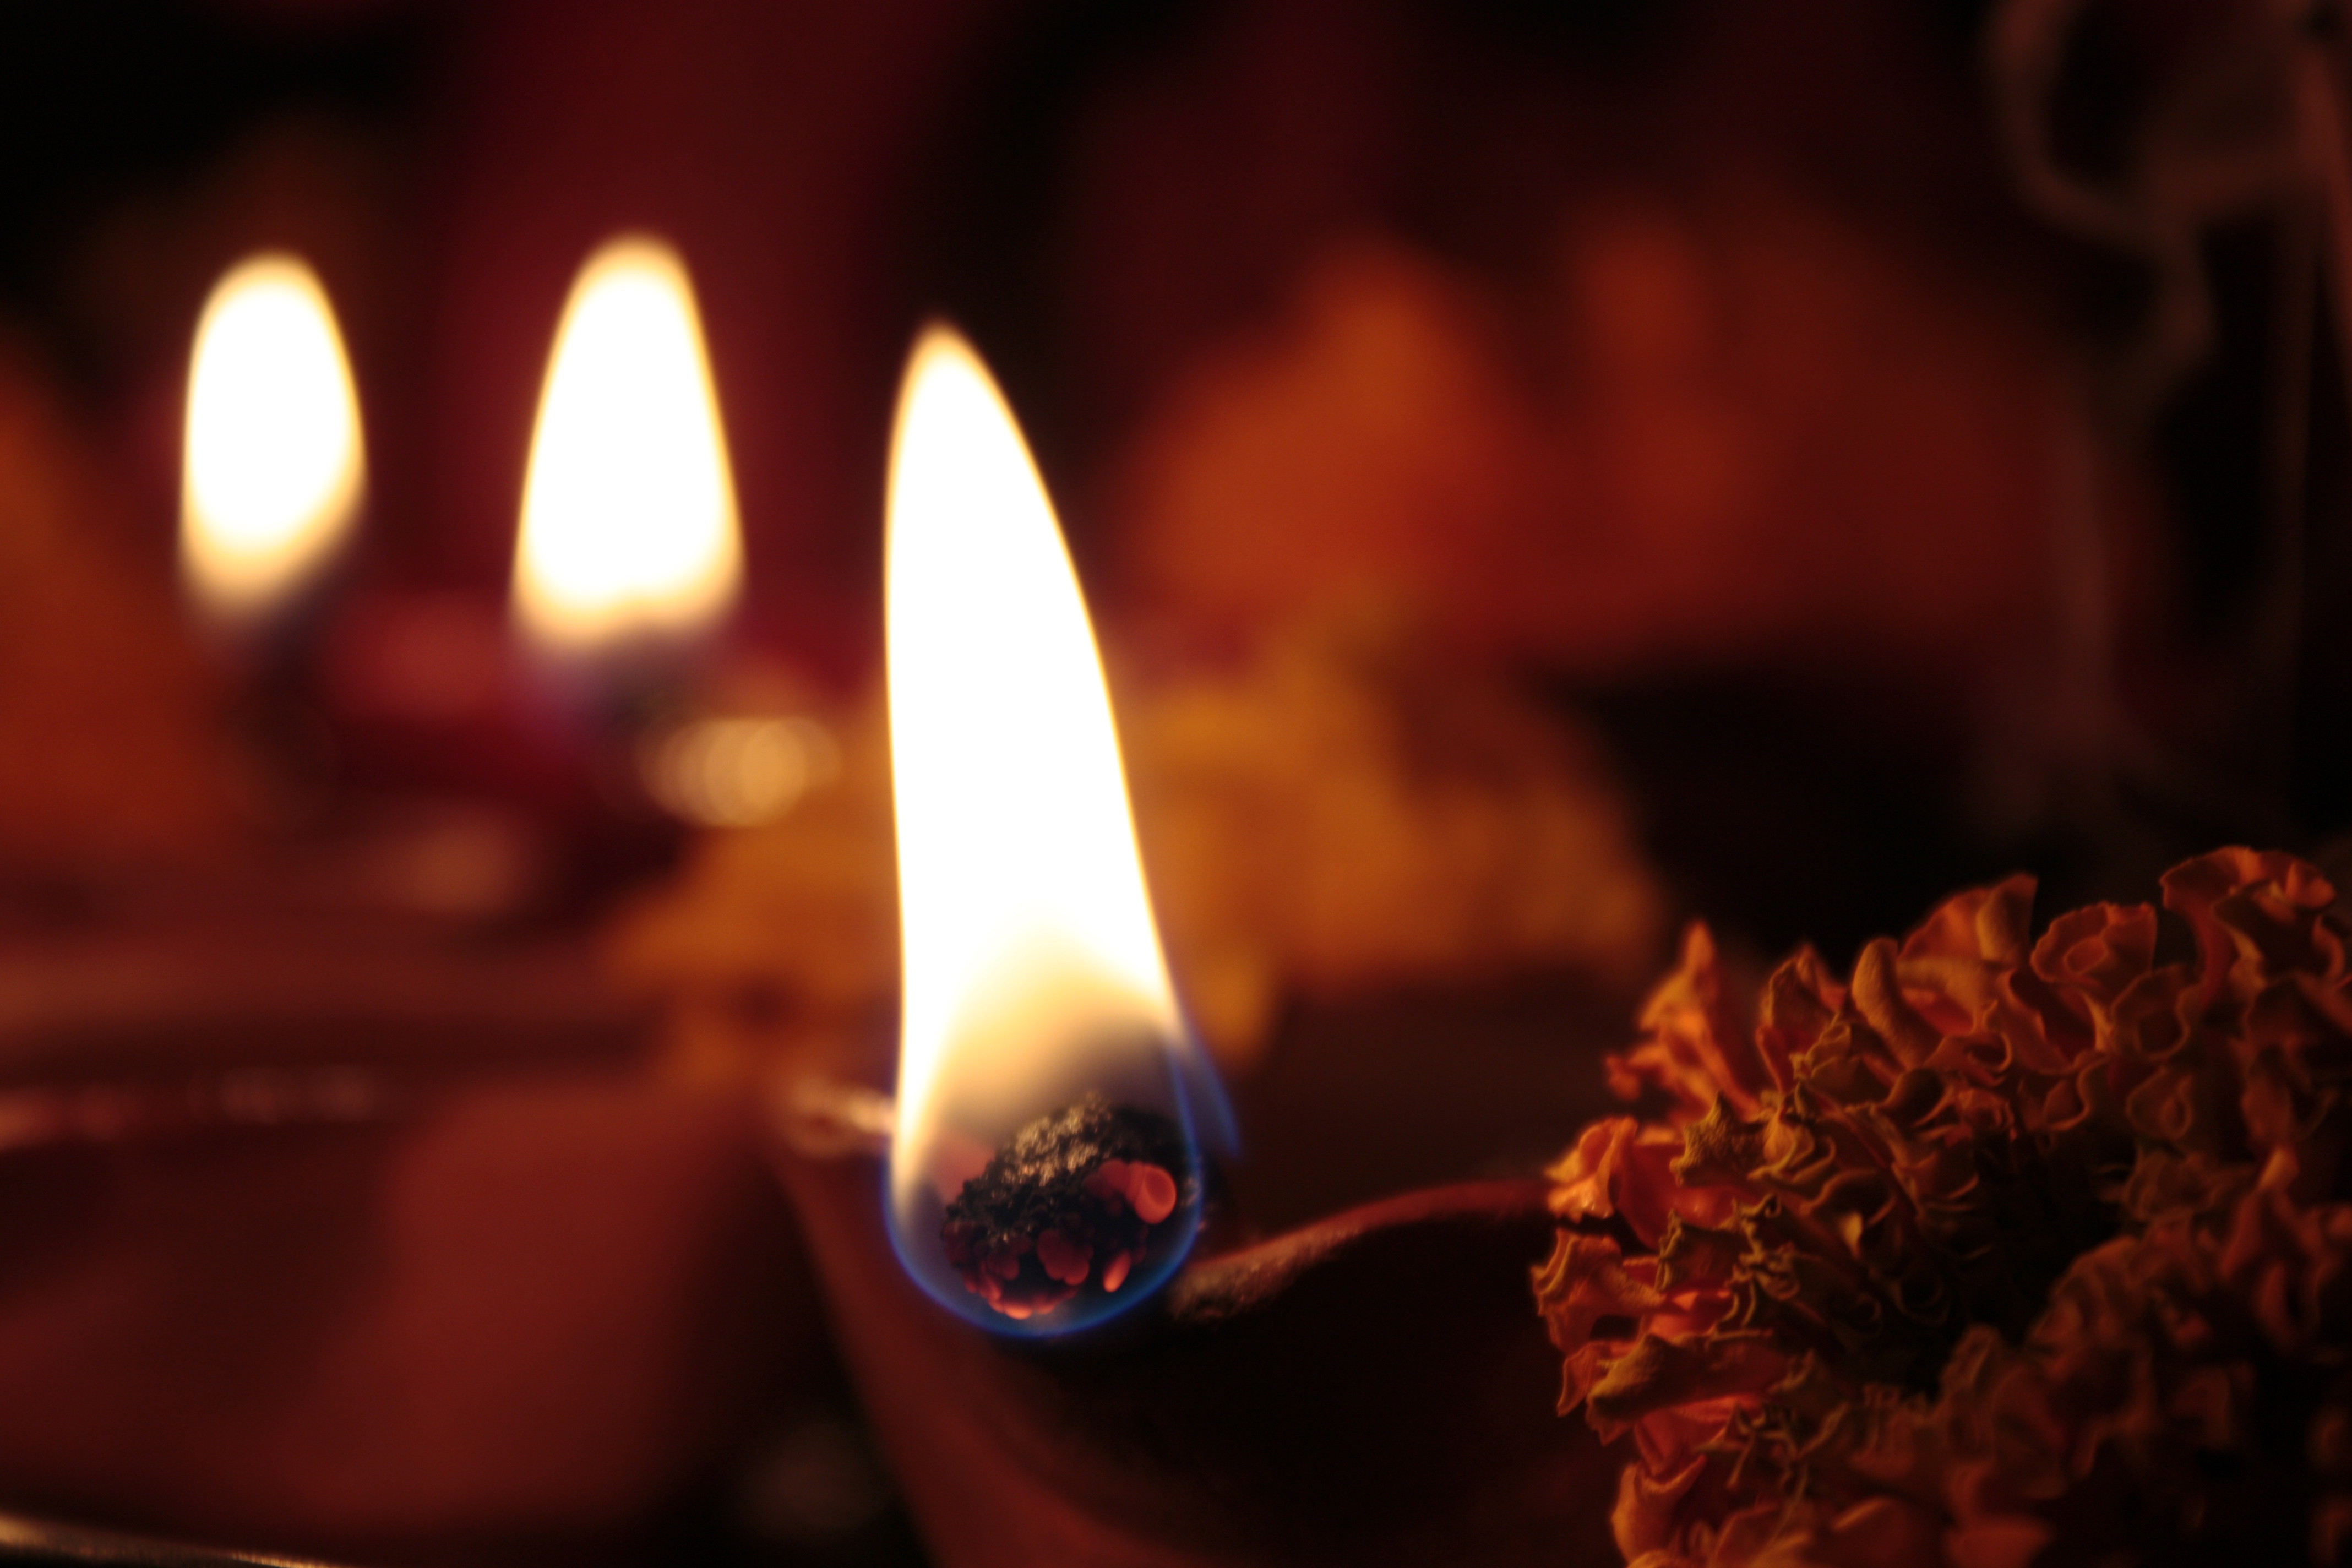 Four earthen lamps(diya) on diwali, Bright, Decoration, Diwali, Diya, HQ Photo